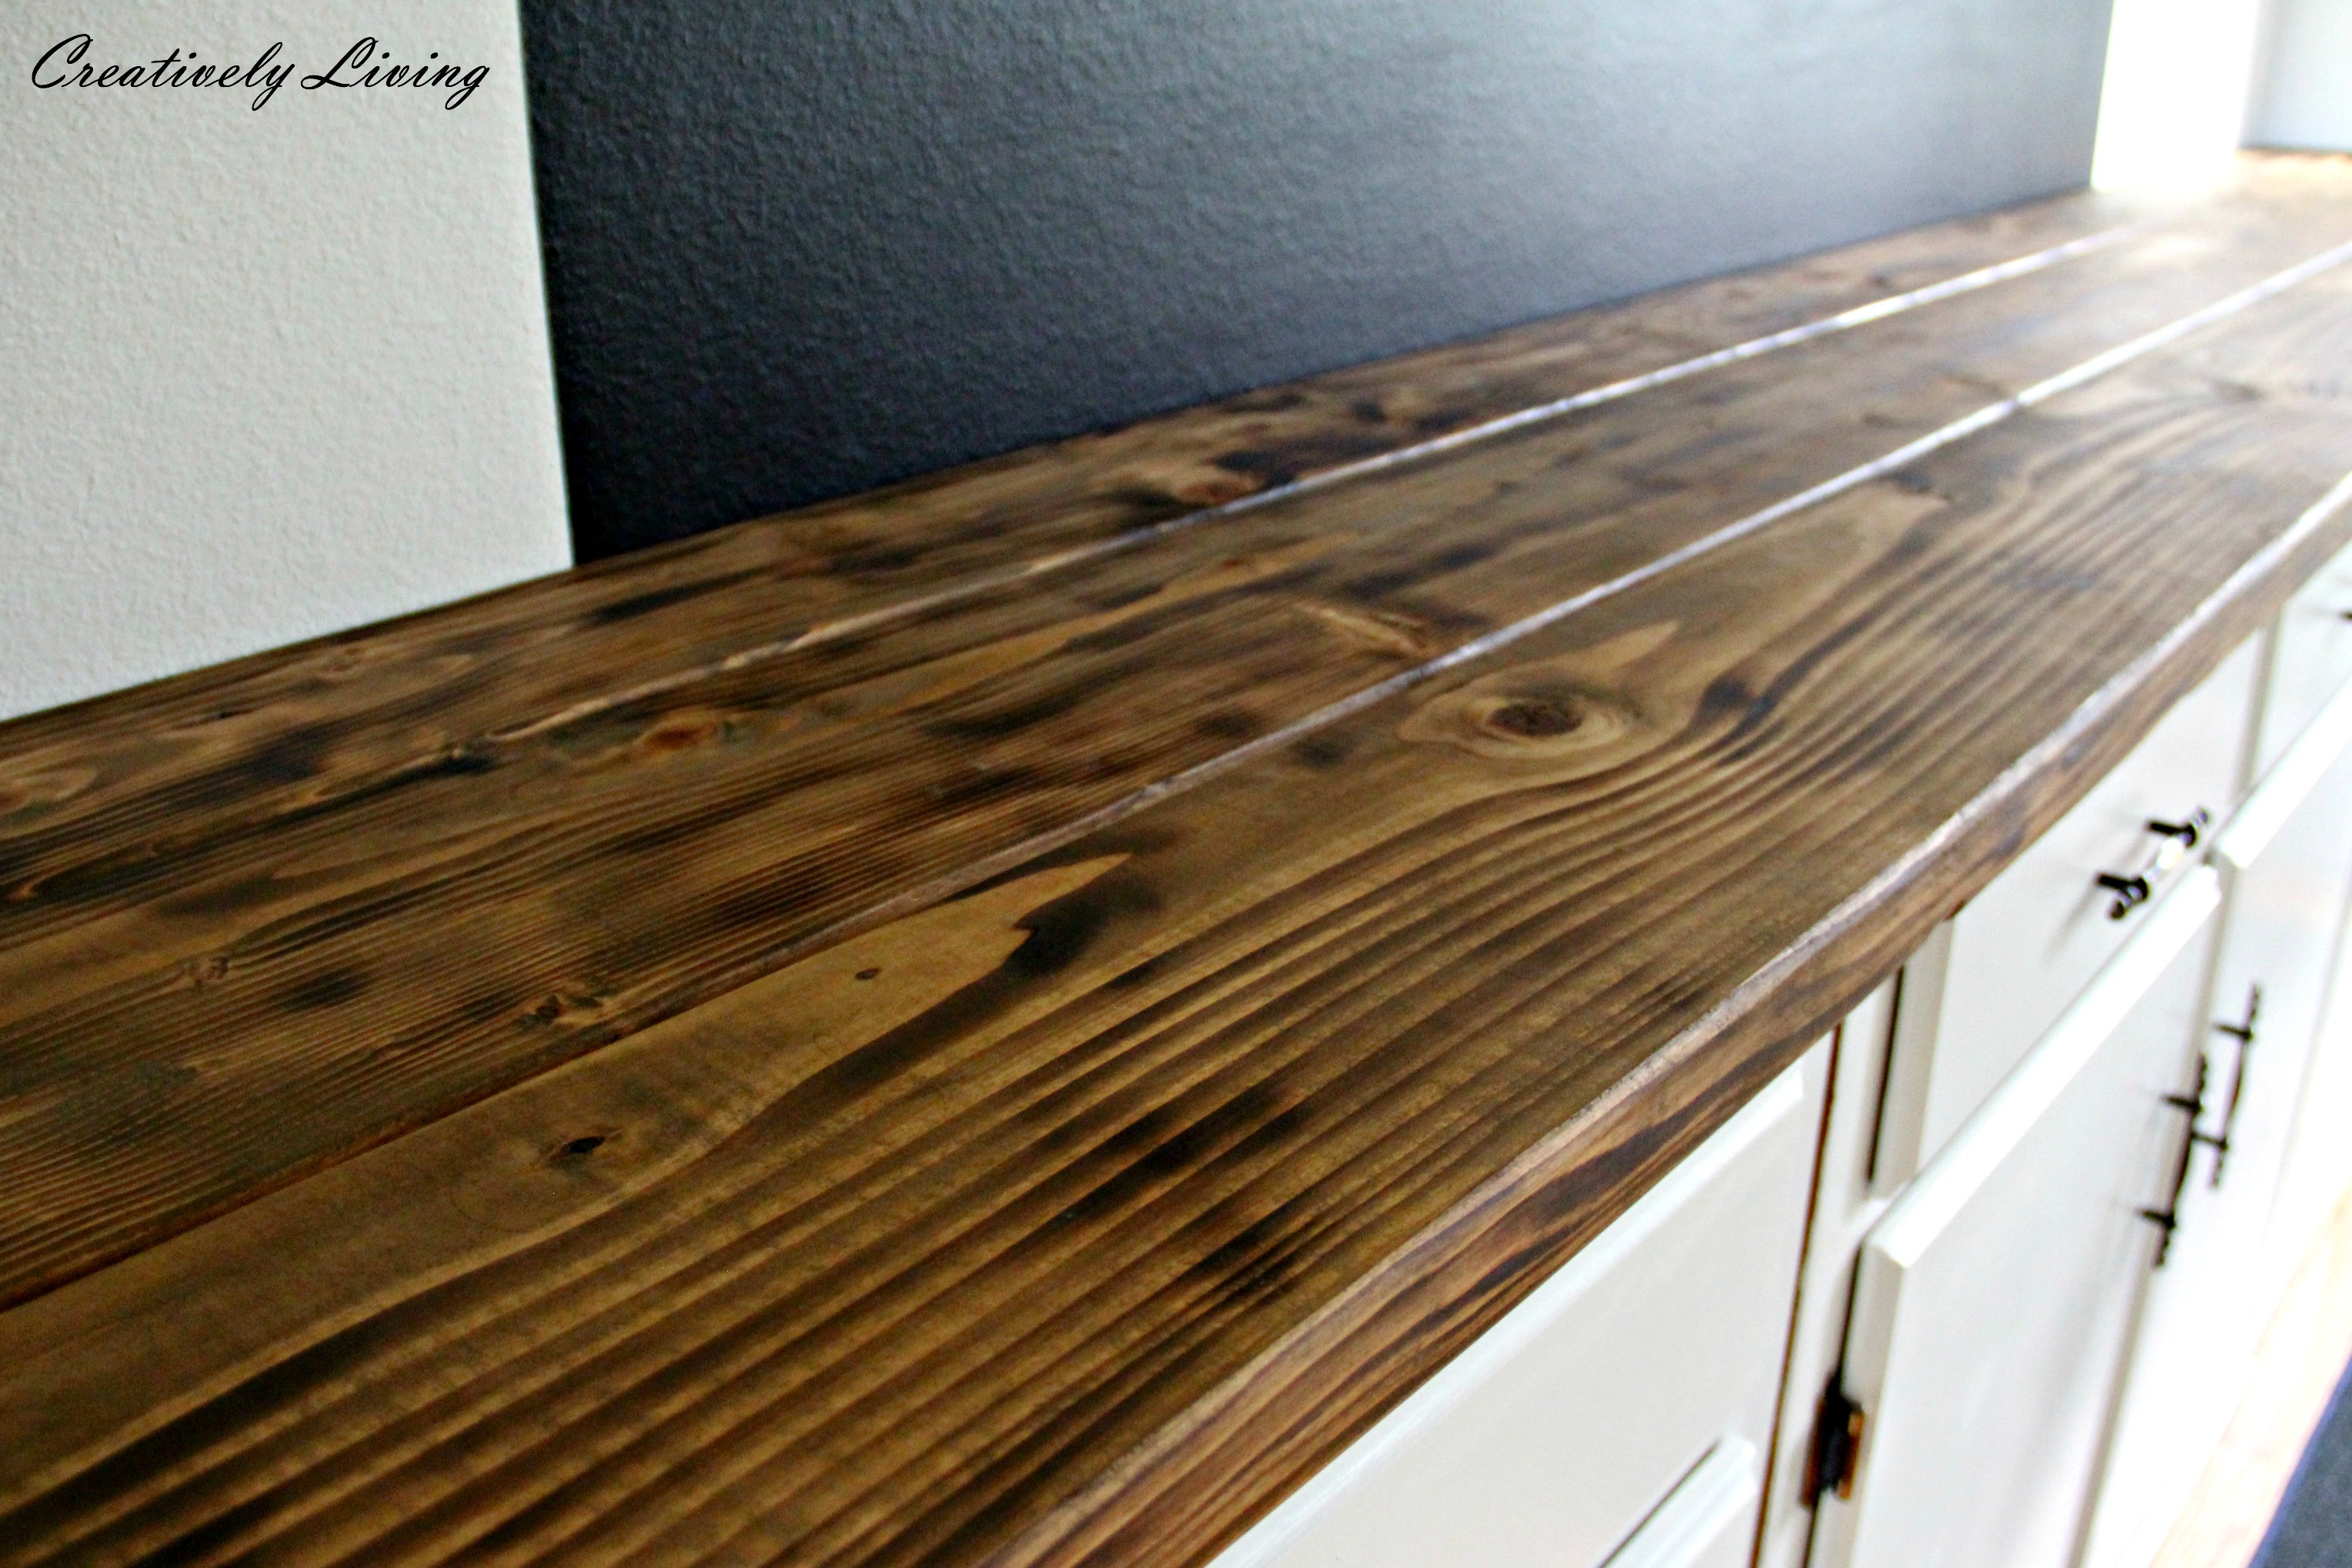 Wood Countertops DIY  Torched DIY Rustic Wood Counter Top for Under $50 by